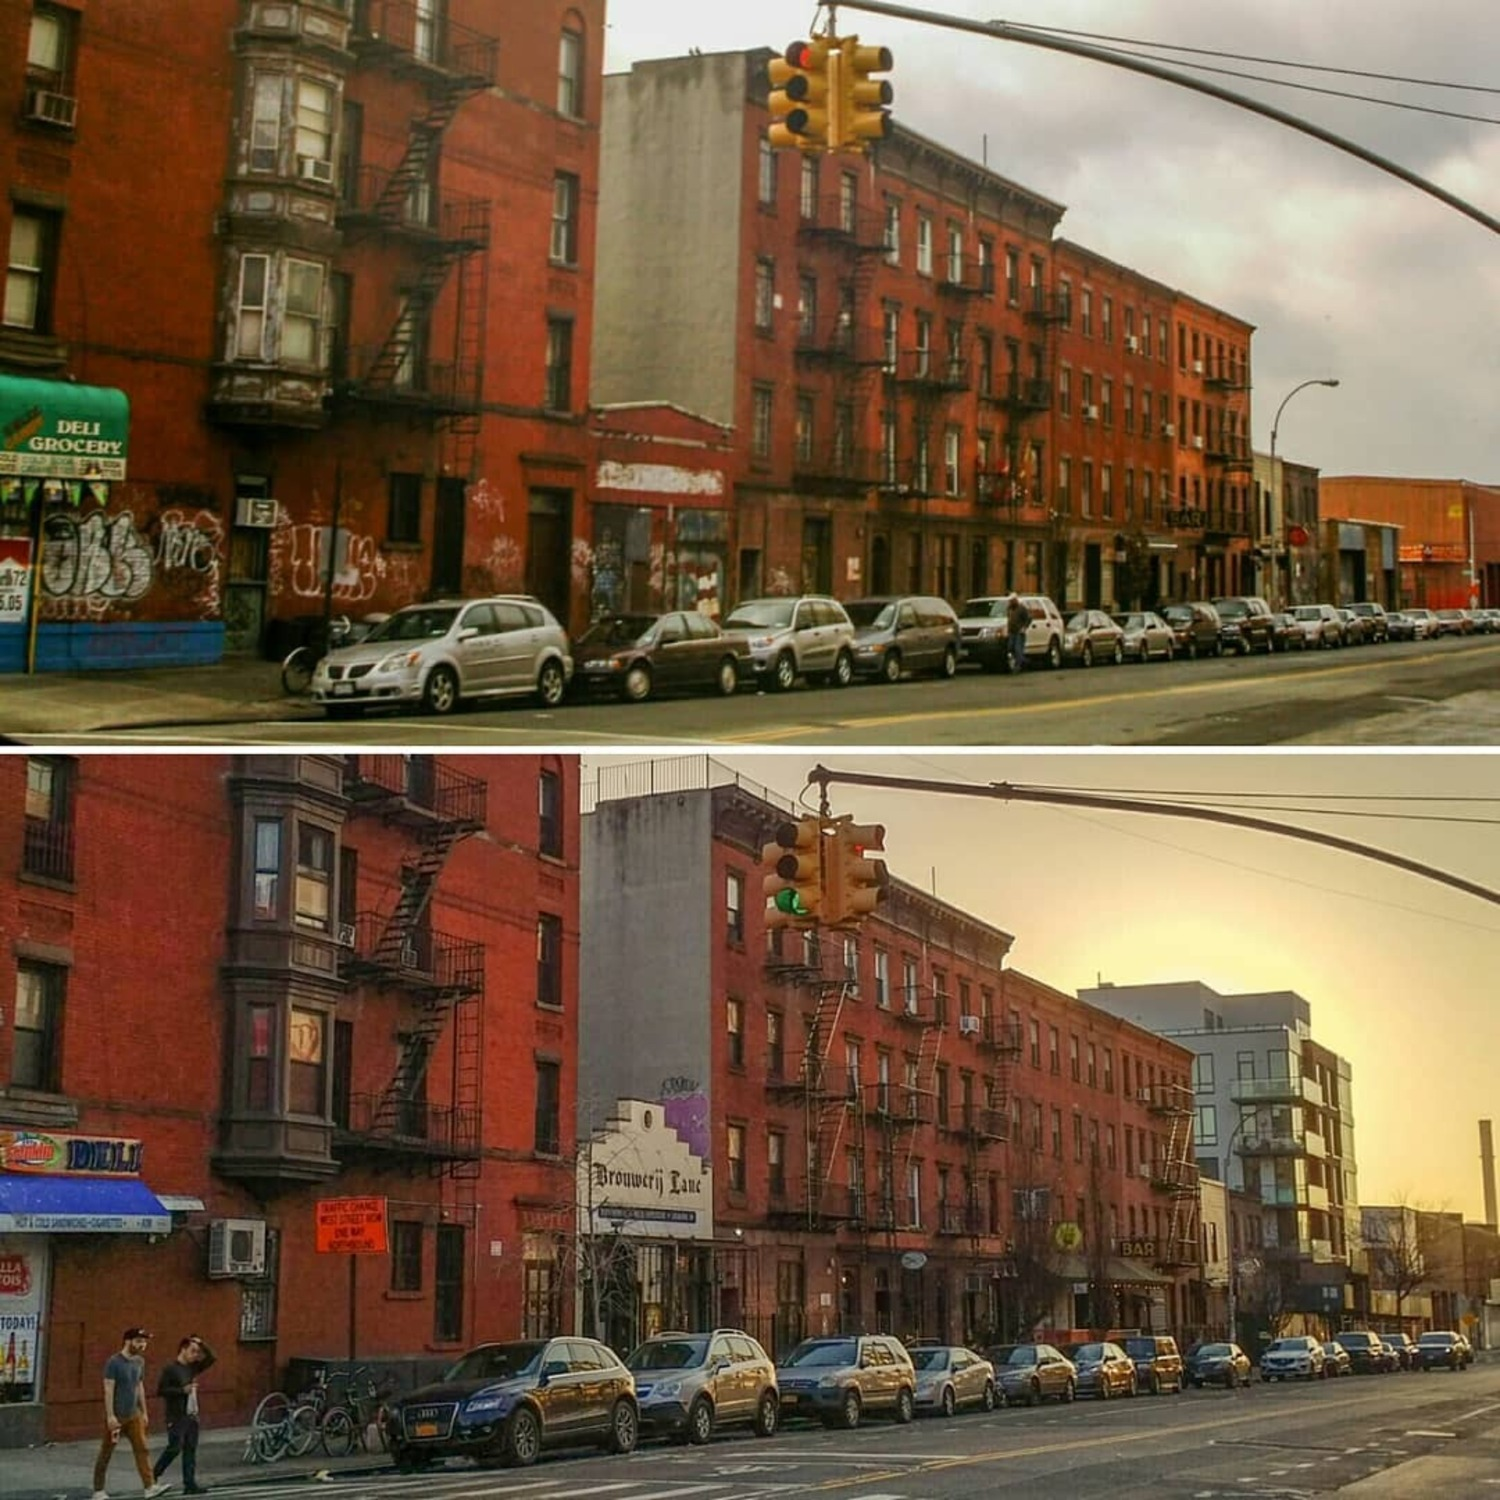 Greenpoint Avenue 2005 / 2018  Between Franklin Street and West Street.  #greenpoint #brooklyn #nyc #graffiti #newyorkcity #bars #businesses #deli #Bodega #grocery #greenpointave #bar #beer #brickbuilding #buildings #nostalgia #thenandnow #city #neighborhood #BKLYN #718 #sunset #missingthepoint  #architechure #streetphotography #brouwerijlane